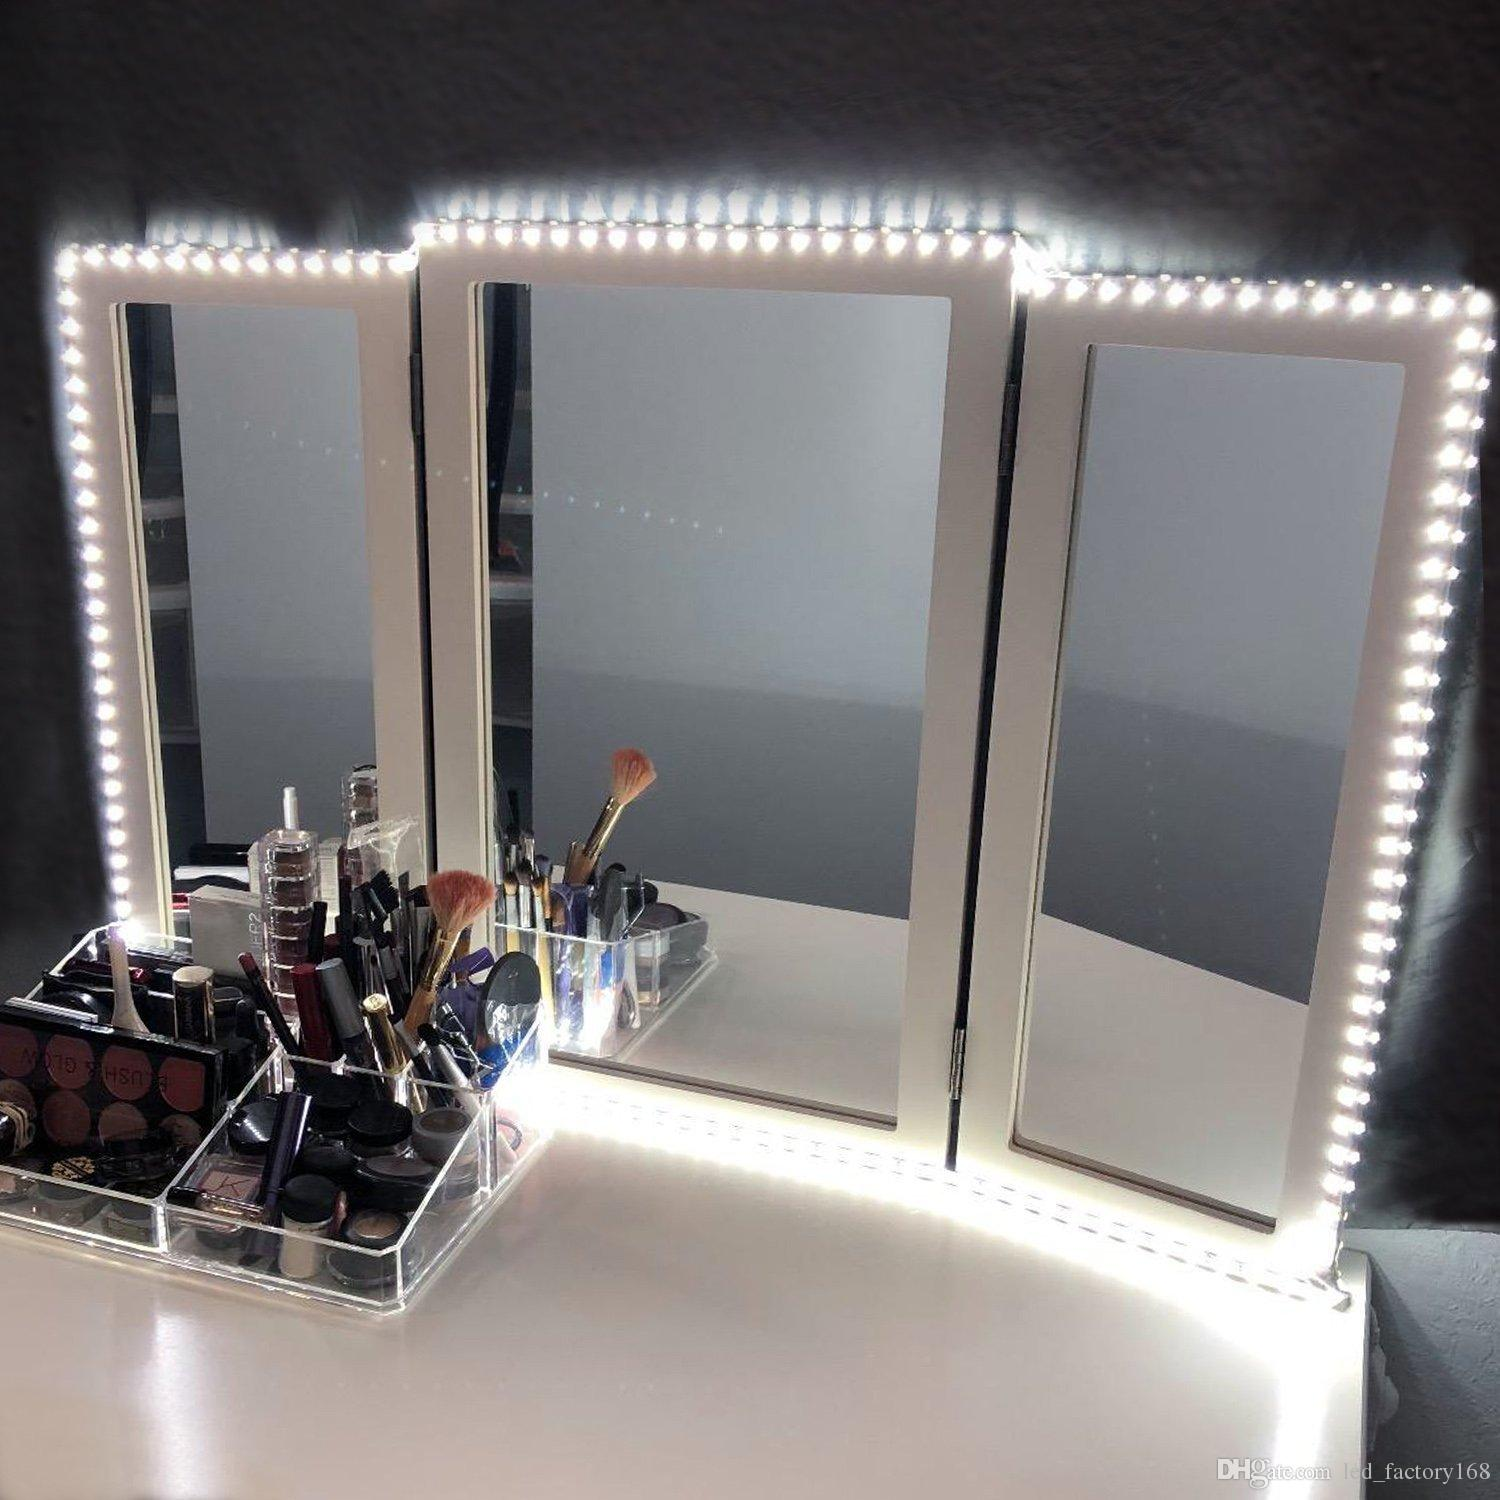 2018 Hollywood Style Led Vanity Mirror Lights Kit For Makeup Dressing Table Set 11ft Flexible Light Strip 6000k Daylight White With Di From